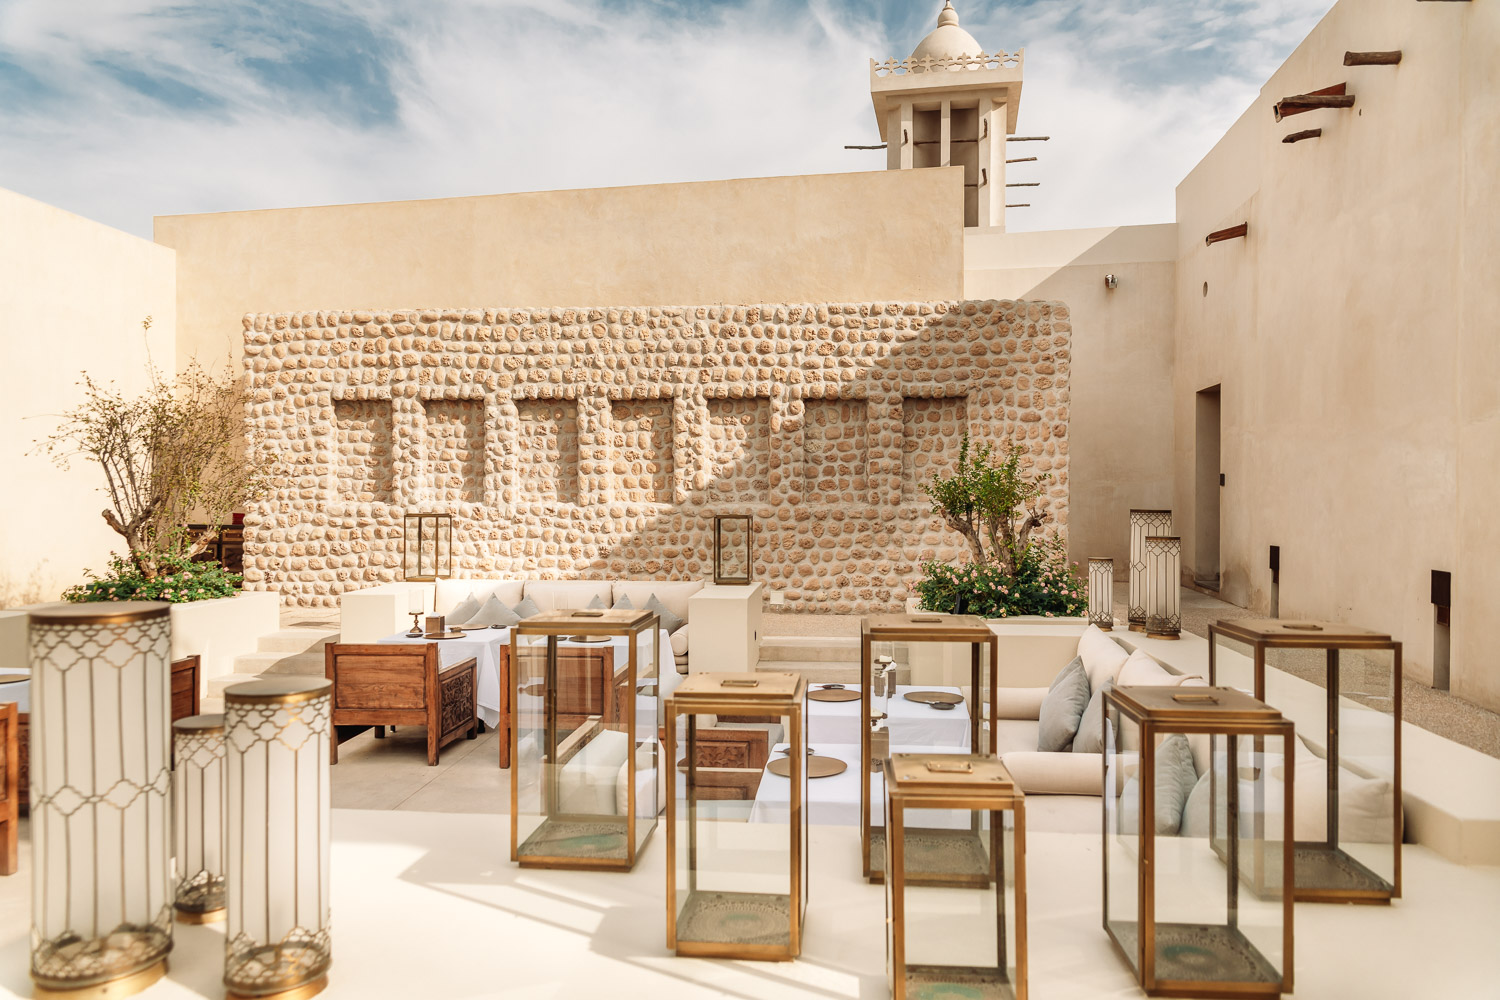 The Arabic Restaurant's outdoor dining area at Al Bait Sharjah